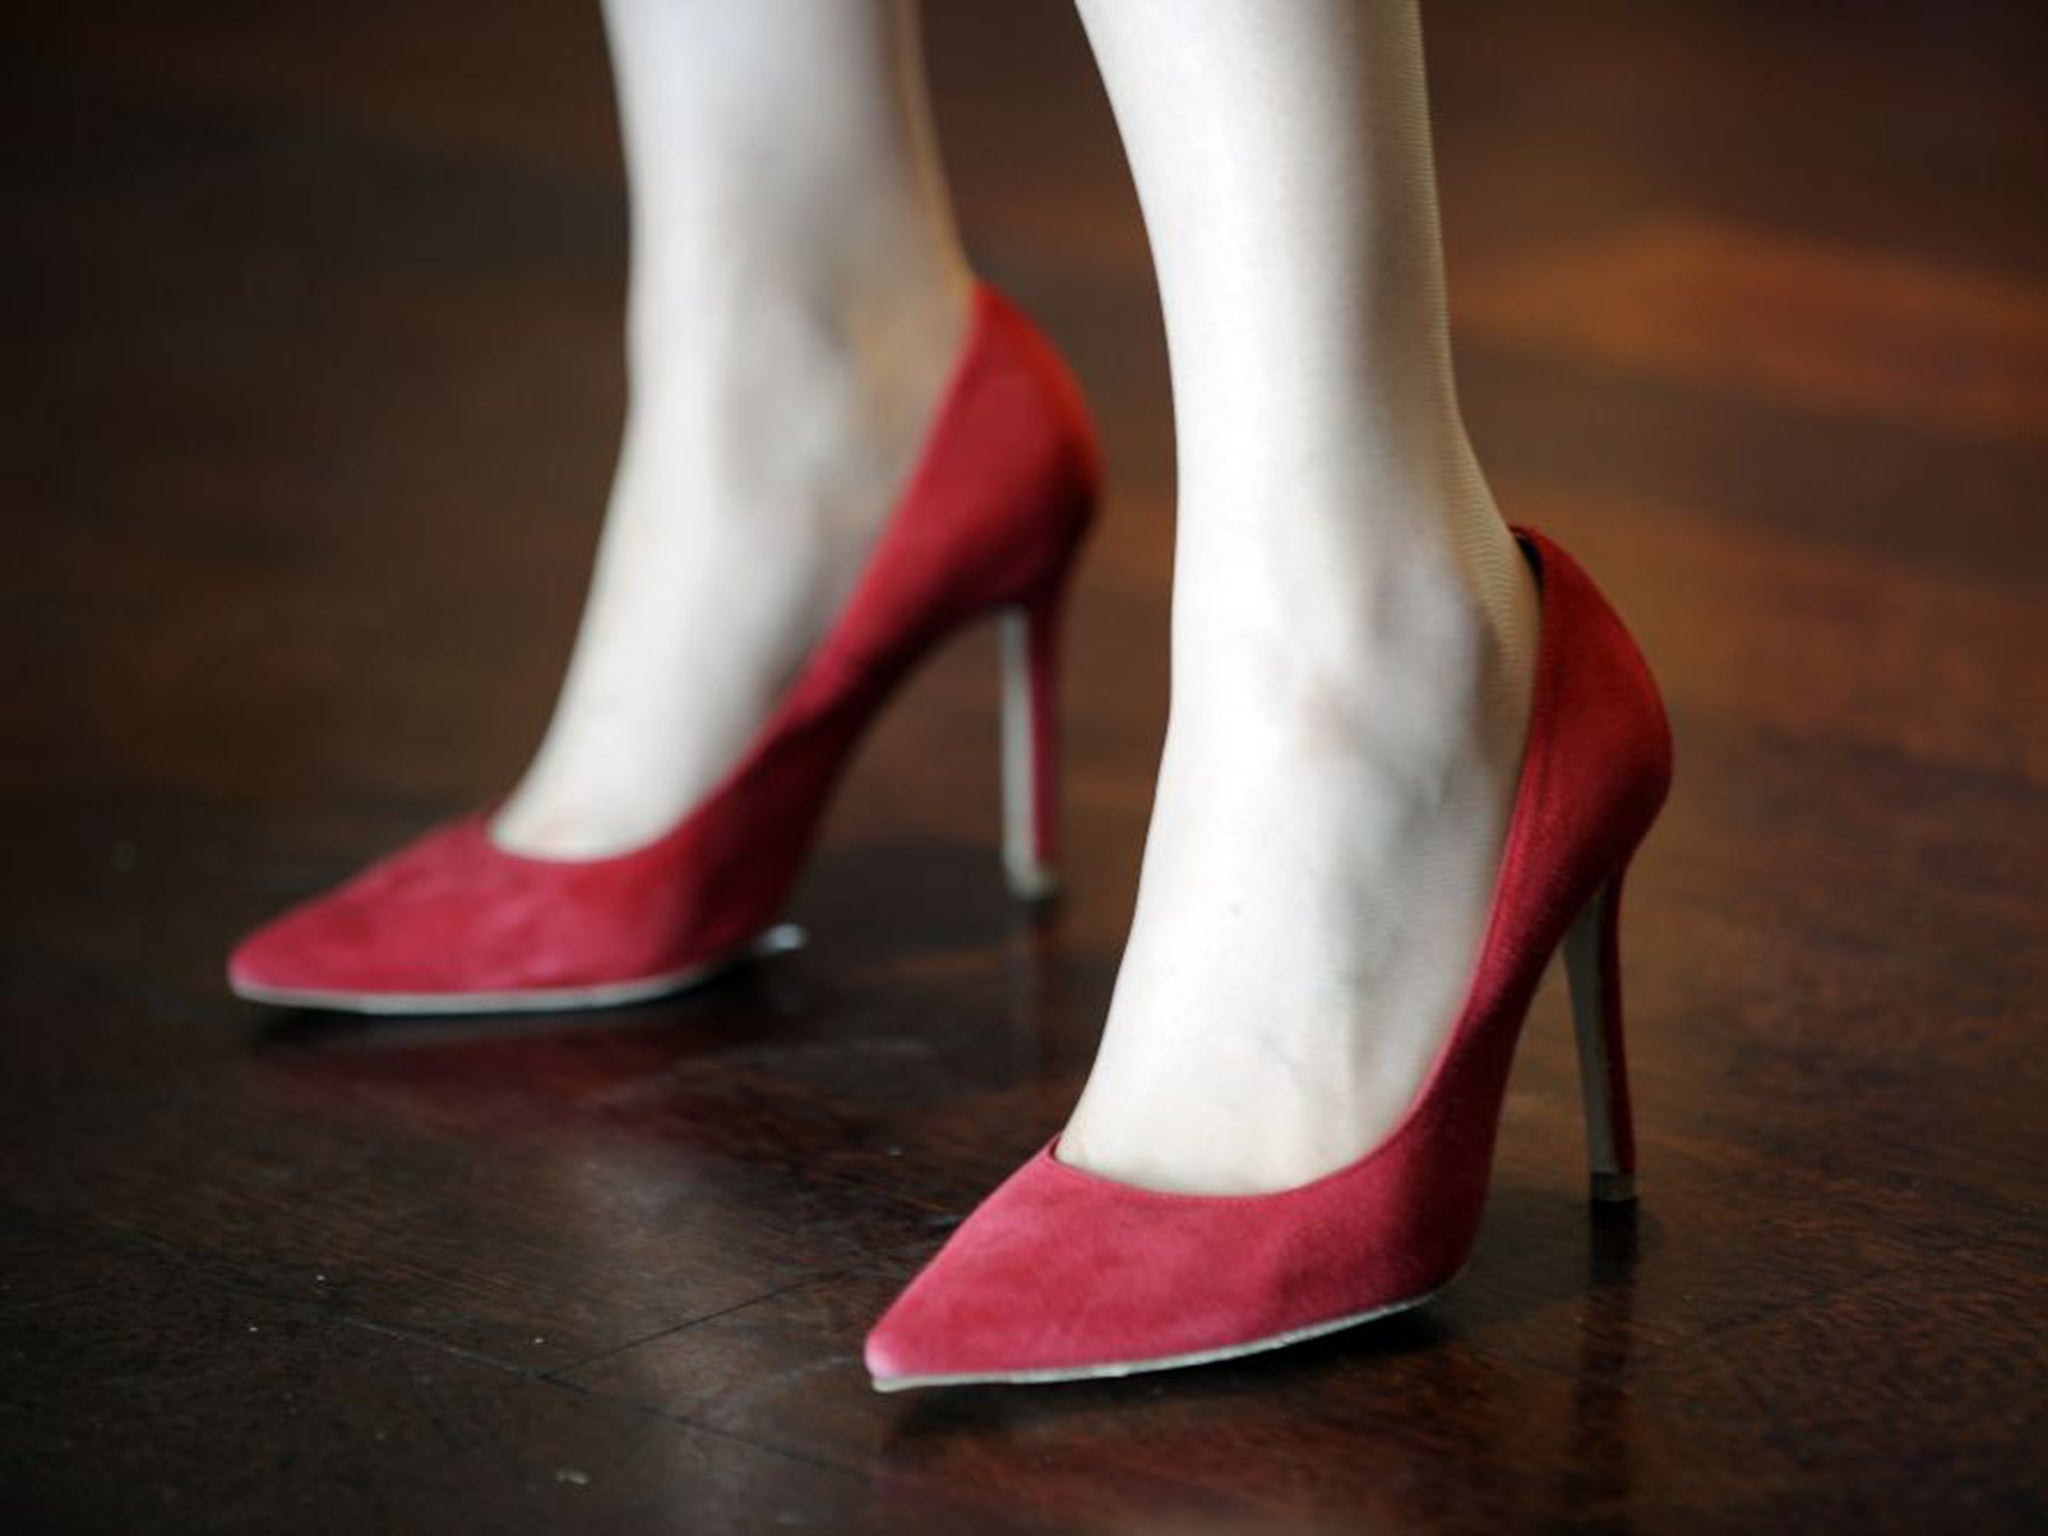 Japanese women urged to 'empower' themselves by wearing high heels ...